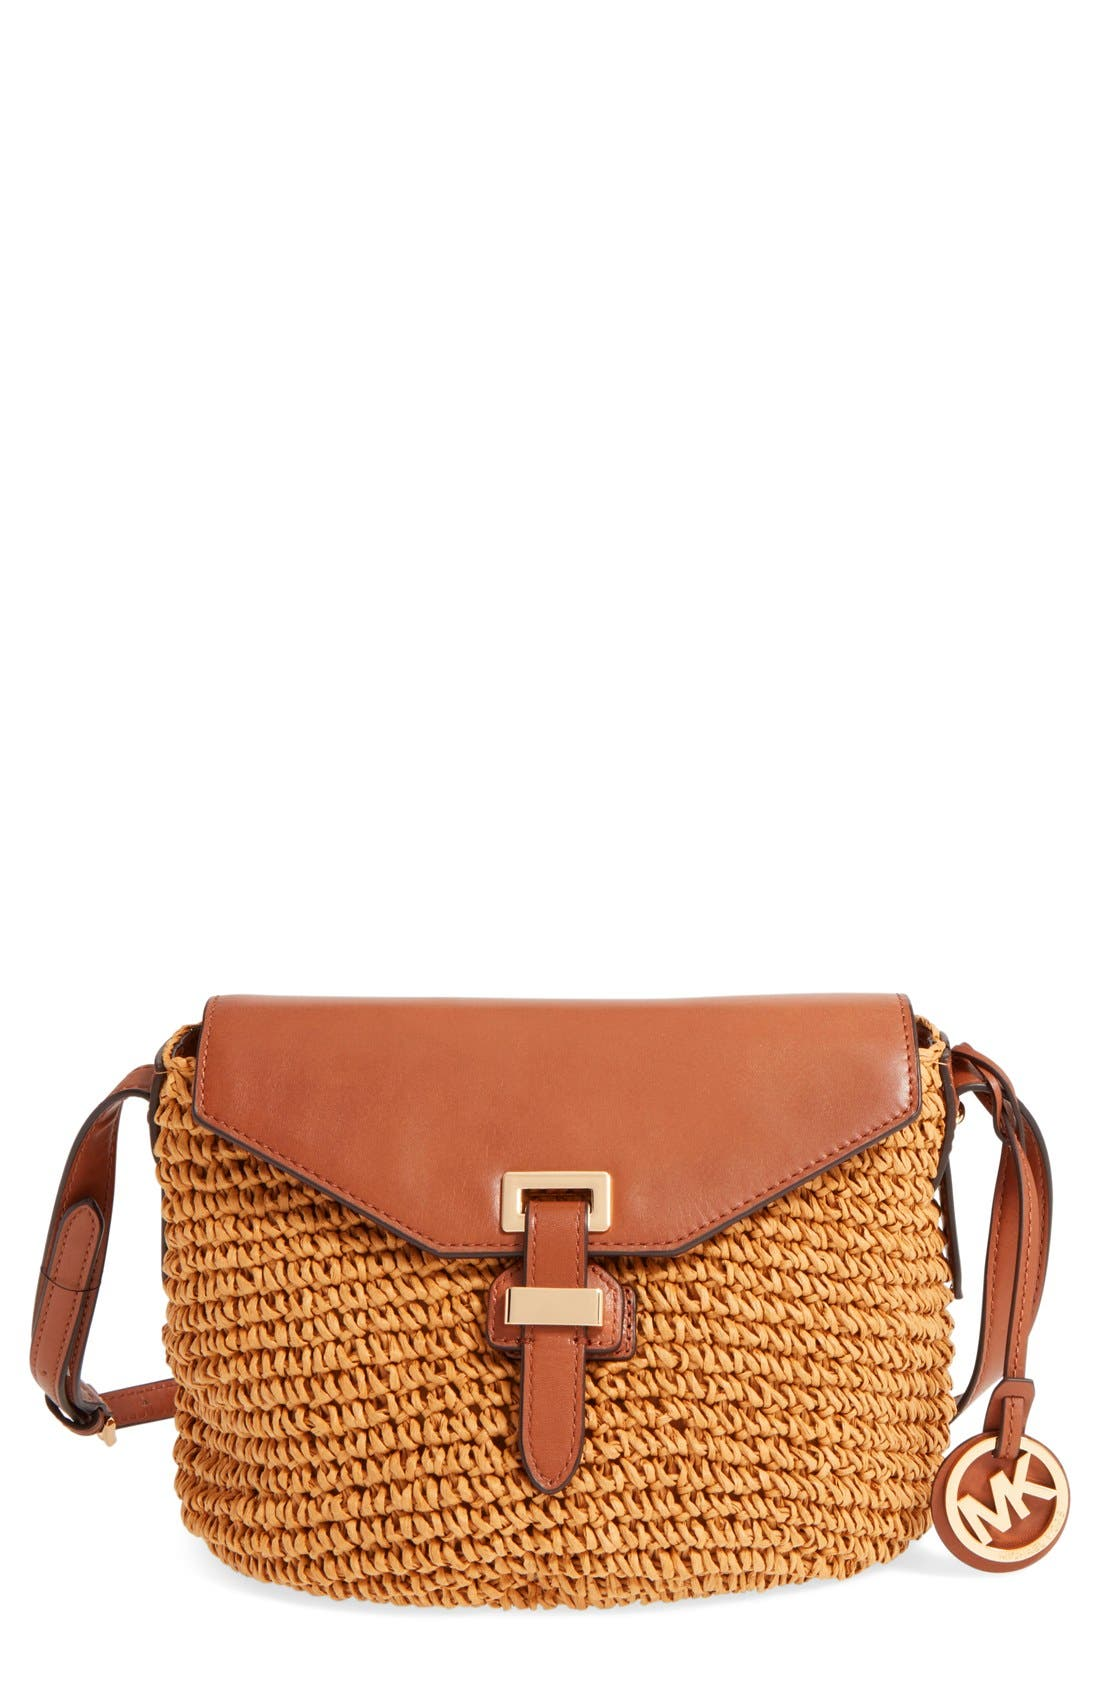 Main Image - MICHAEL Michael Kors 'Medium Naomi' Straw & Leather Messenger Bag